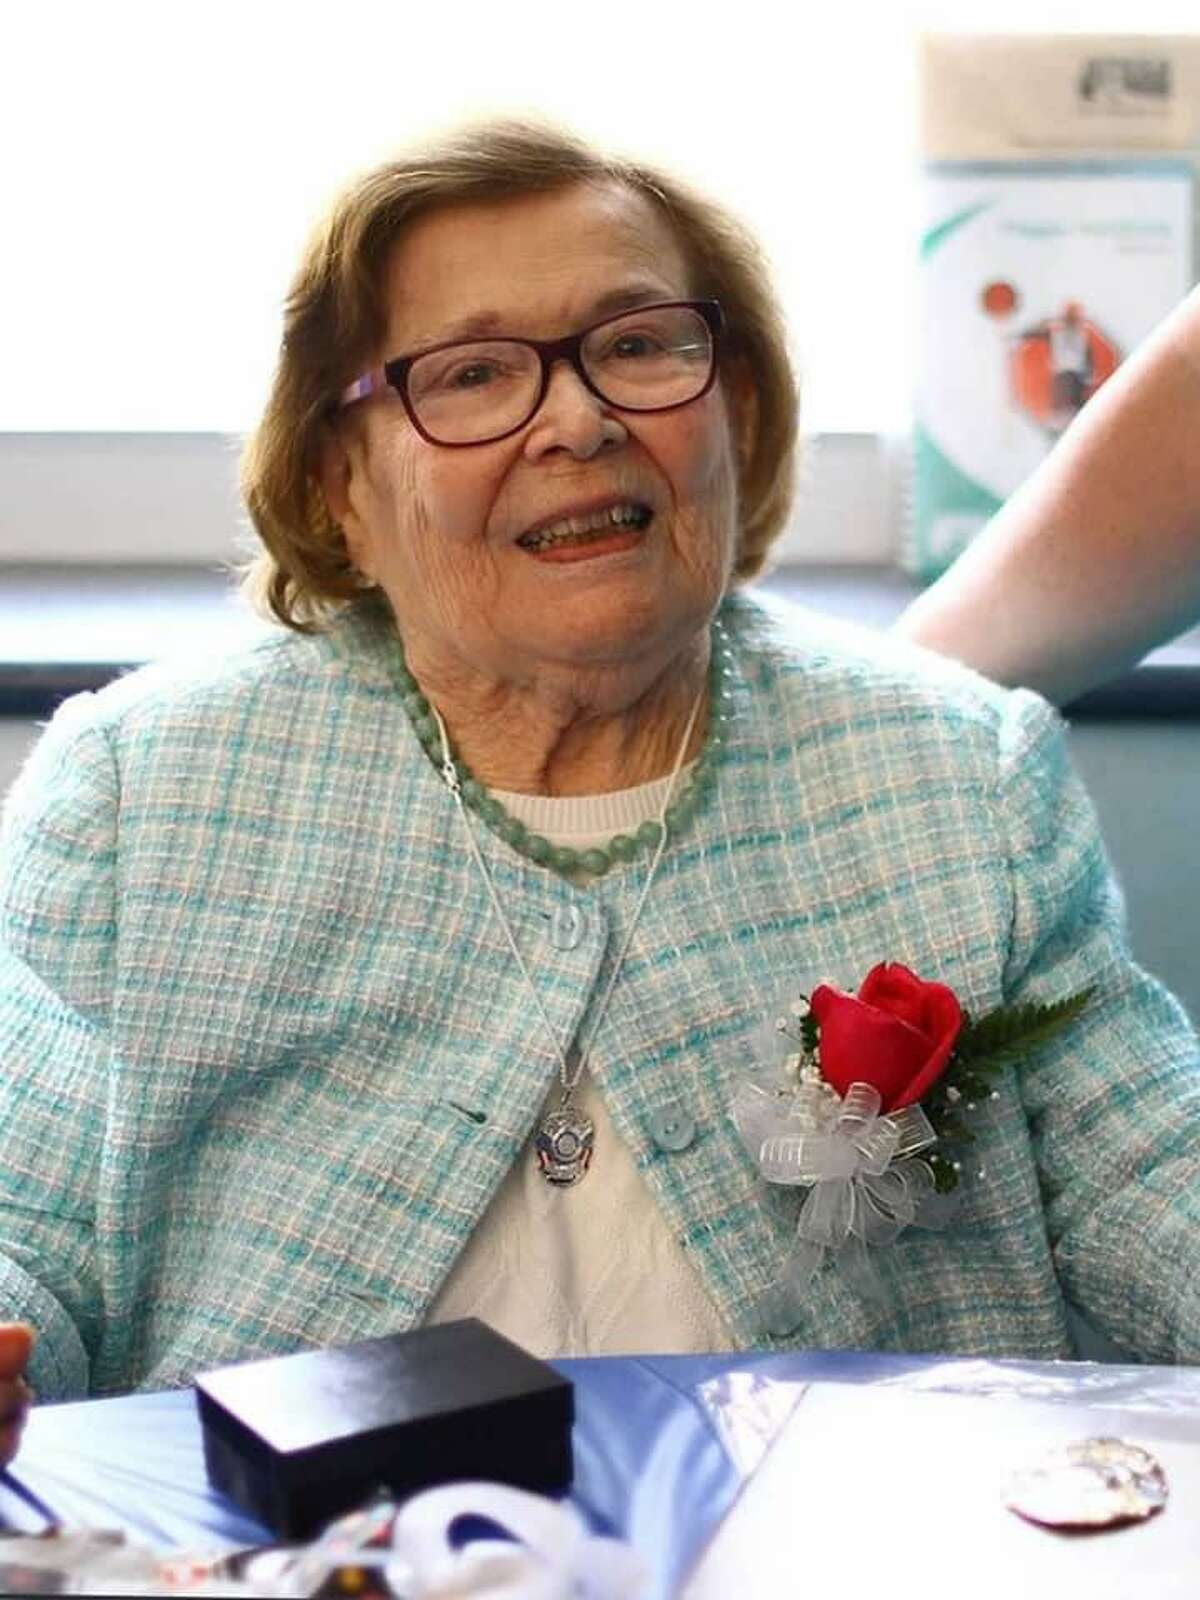 """Margaret A. """"Peggy"""" Sansone was born in New York City on July 21, 1927, daughter of Charles and Margaret (McLoughlin) Brumaghin. She died peacefully in her home on Nov. 25, 2020. She was 93."""